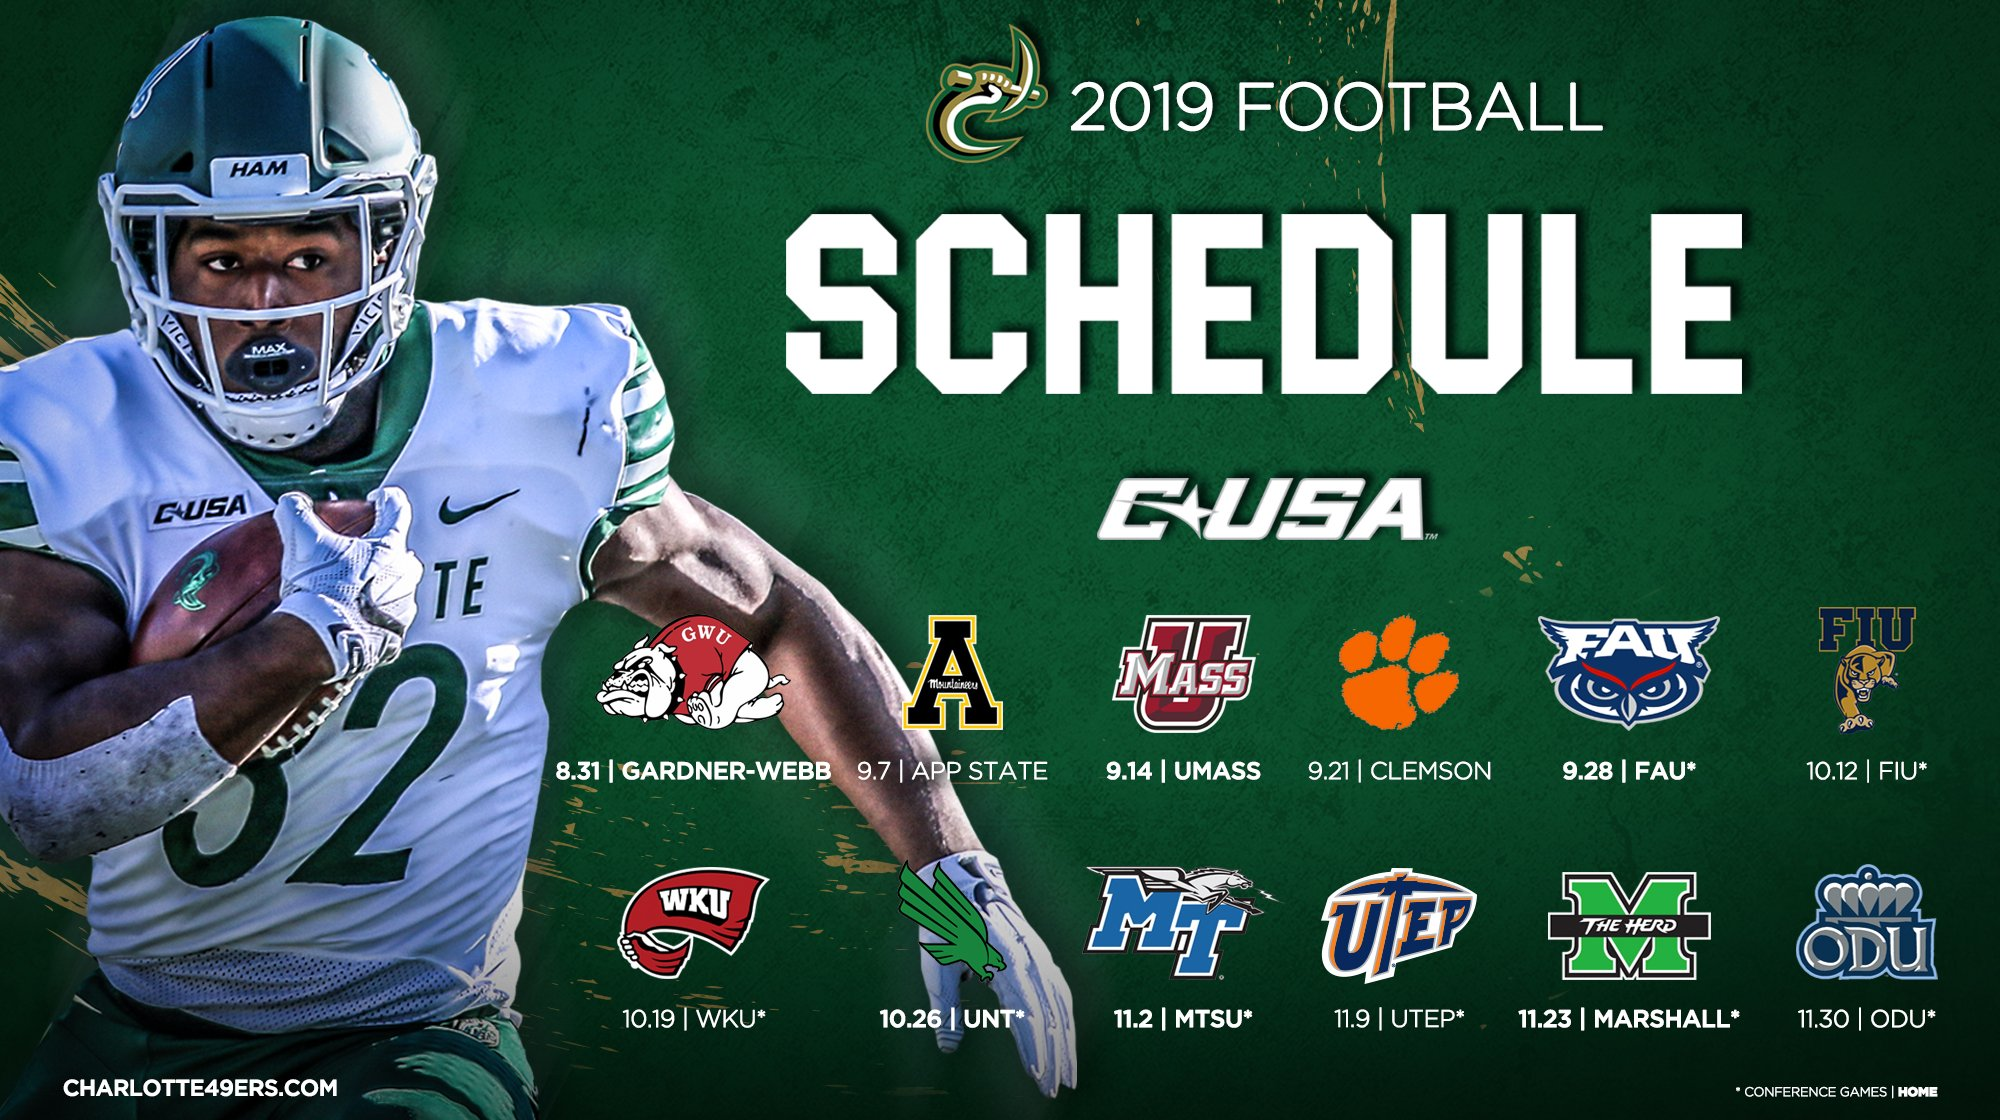 Uncc Football Schedule 2020 2019 Charlotte 49ers Football schedule   Charlotte 49er Football